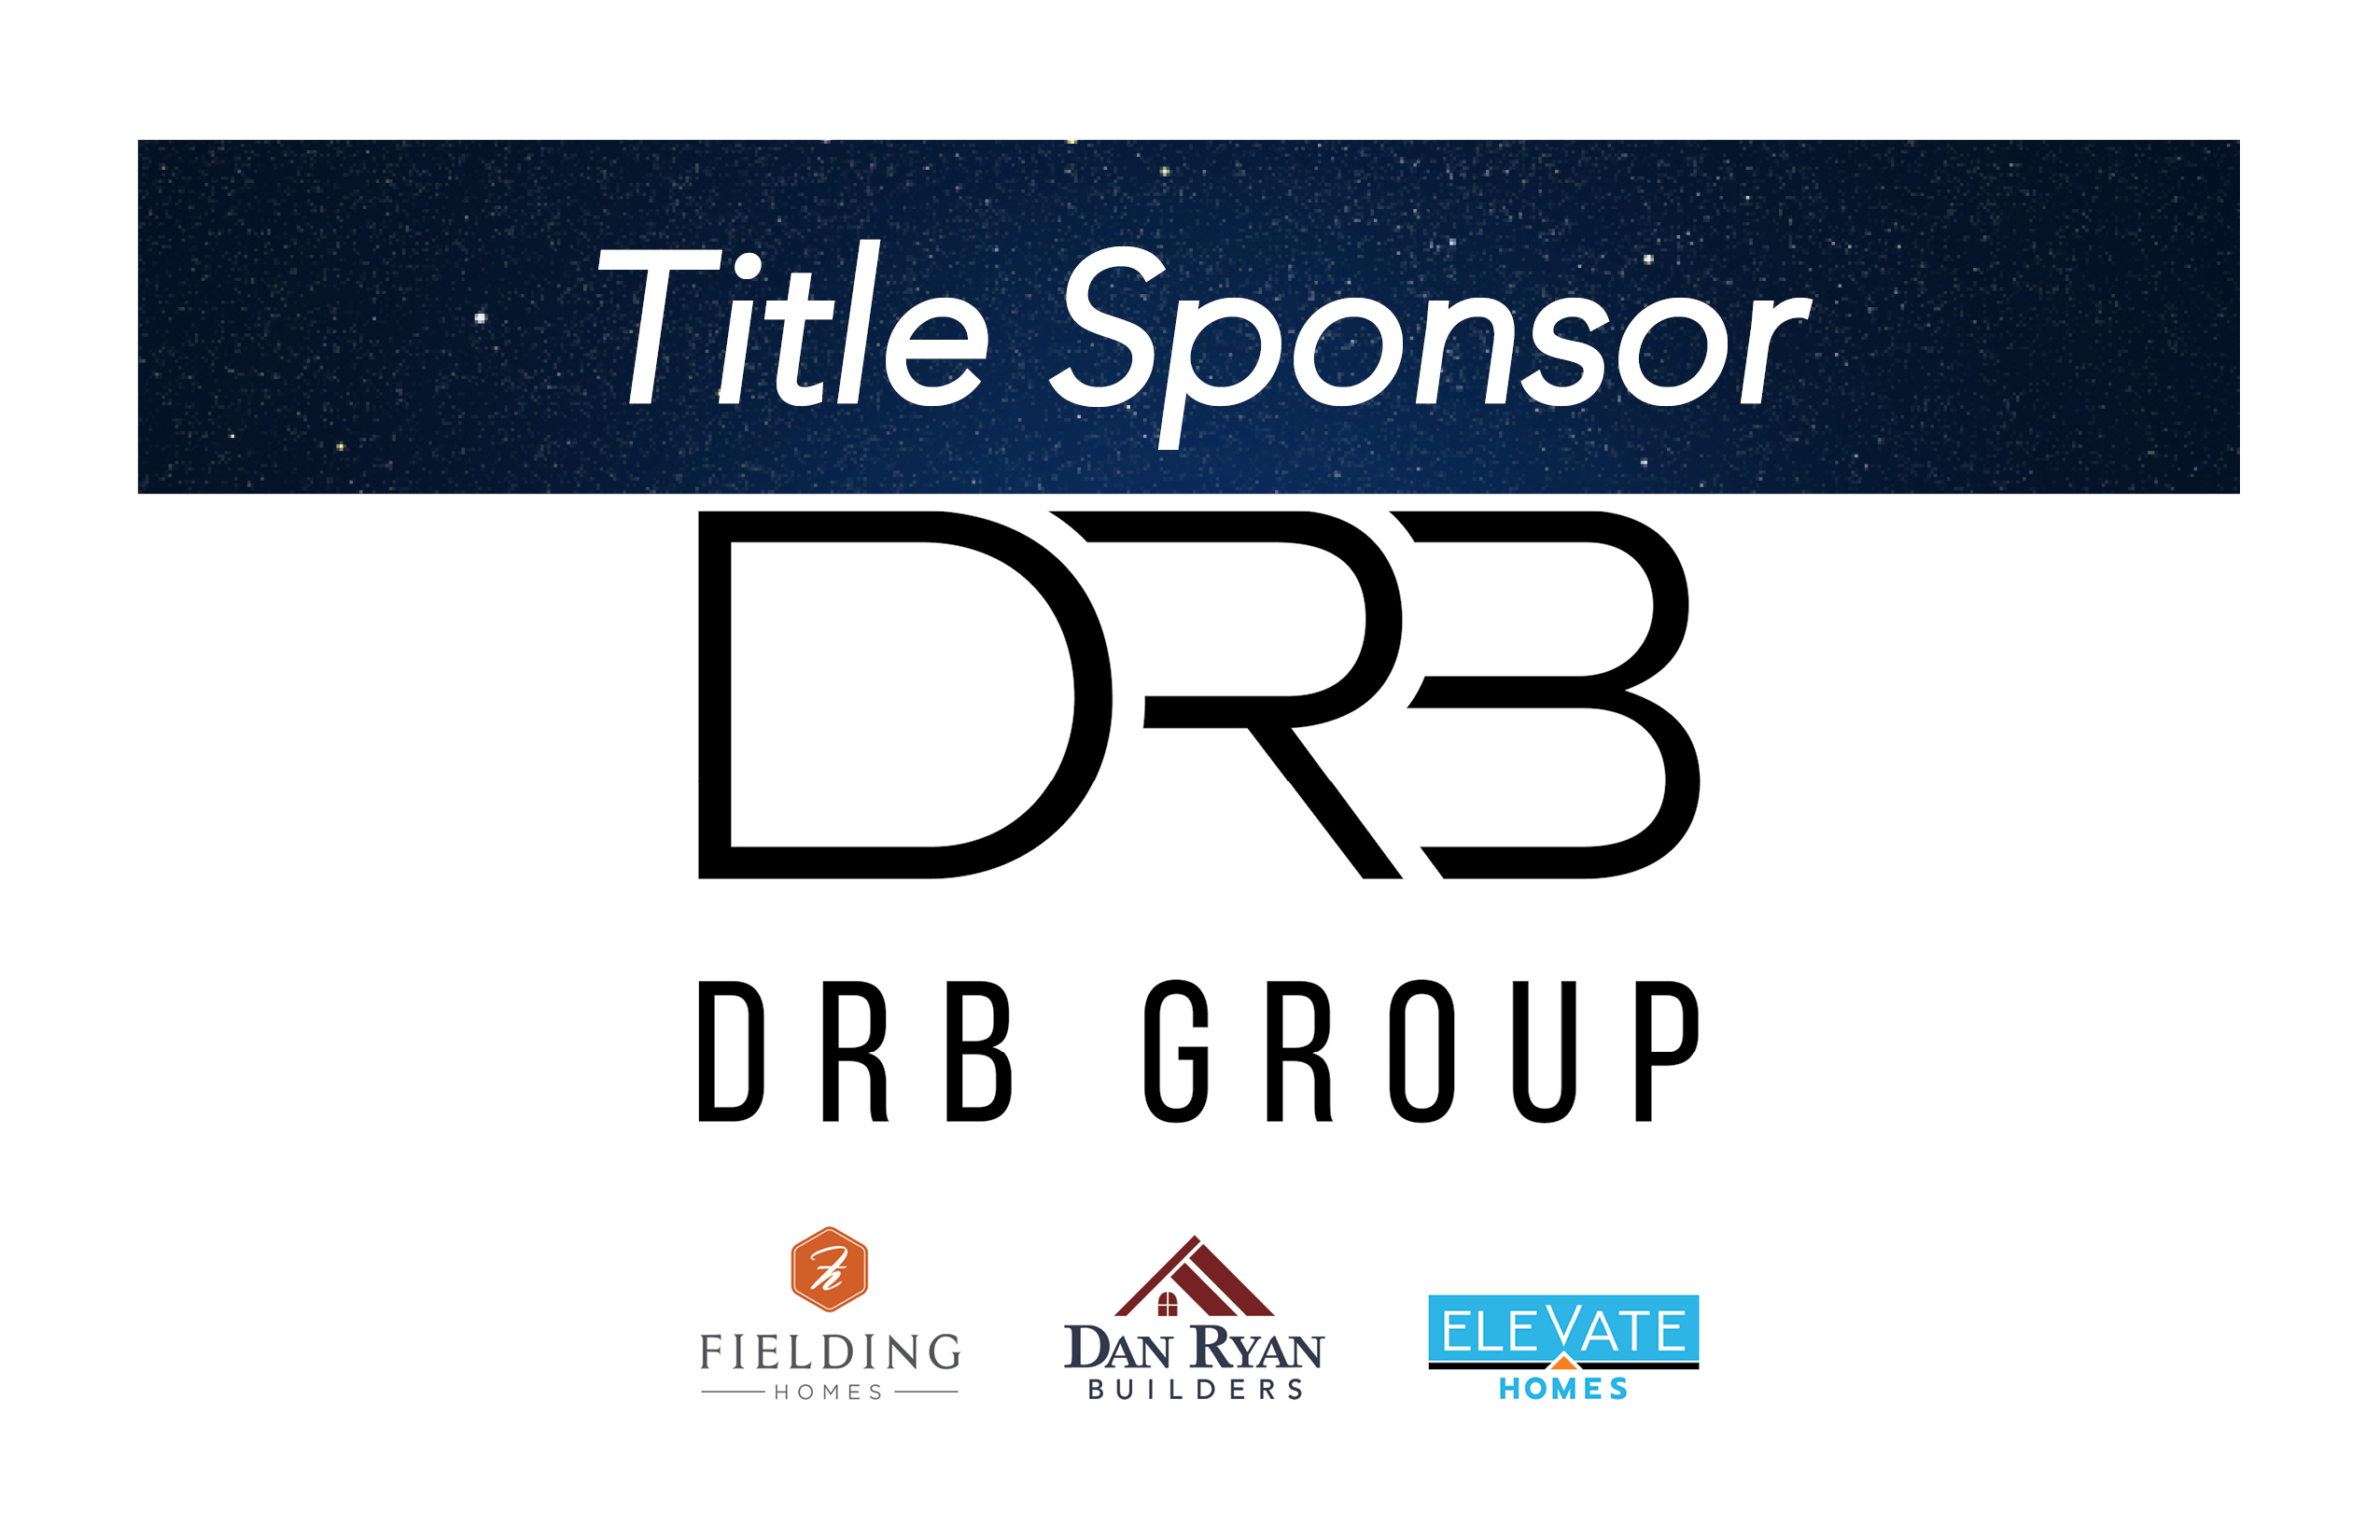 DRB Group, Title Sponsor